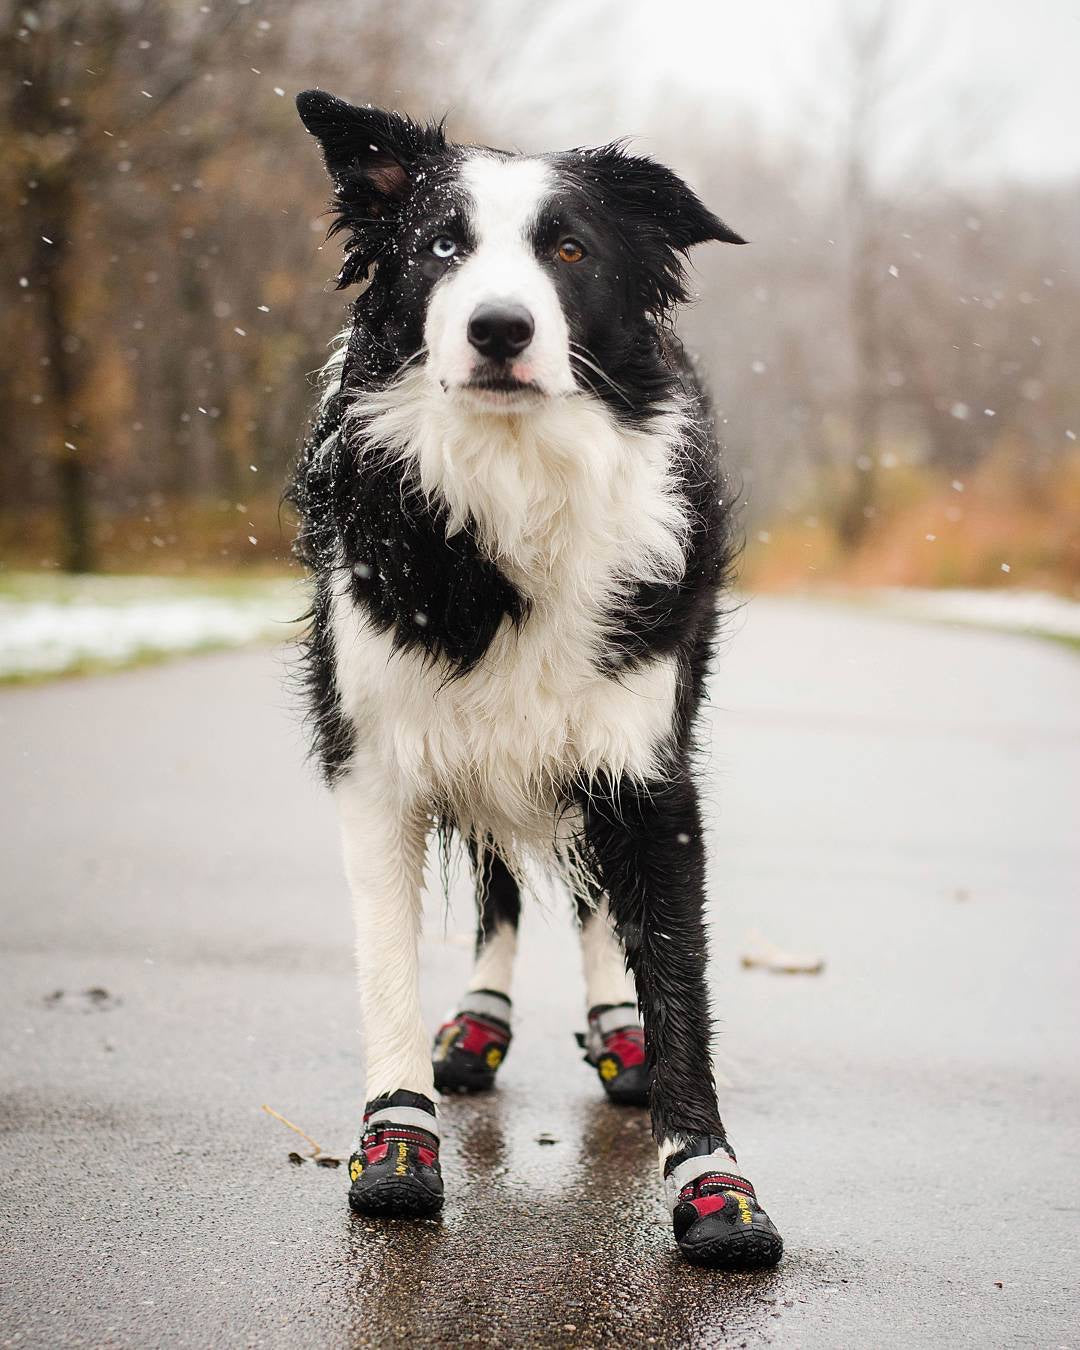 Secure Dog Boots - My Busy Dog - Dog Shoes for Large Dogs